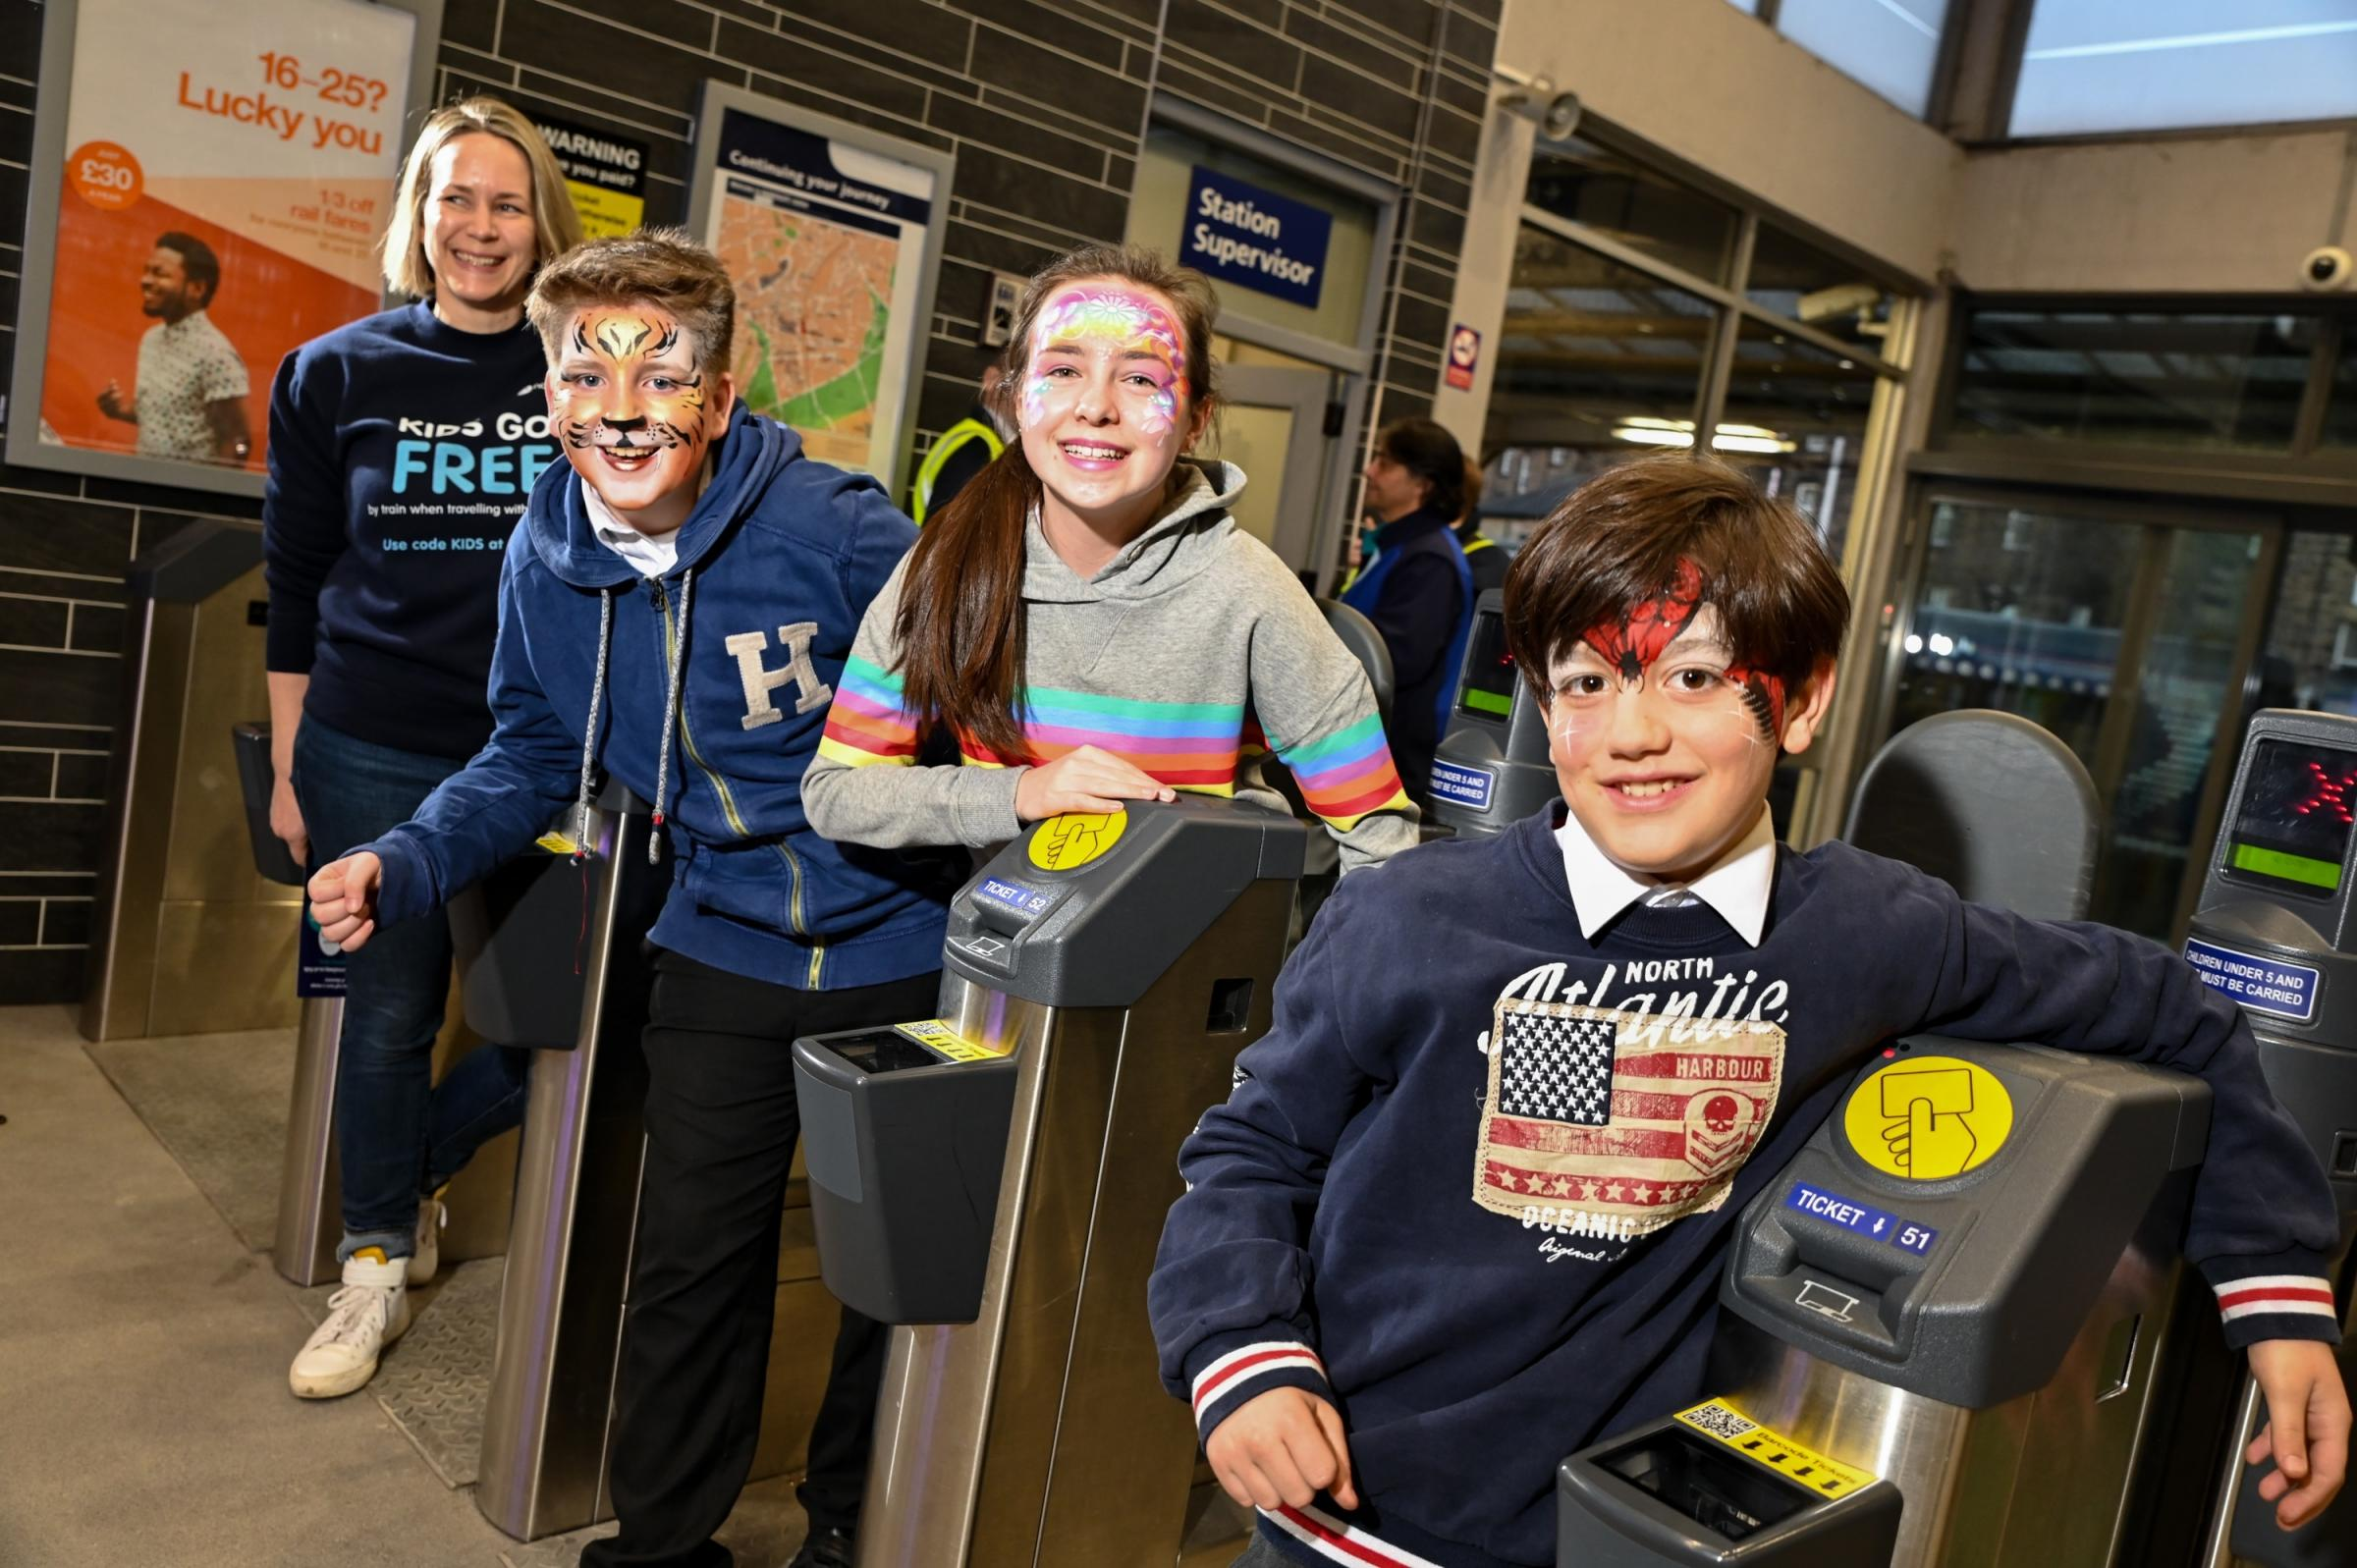 Kids Go Free campaign on Northern this half term. Picture: Simon Dewhurst